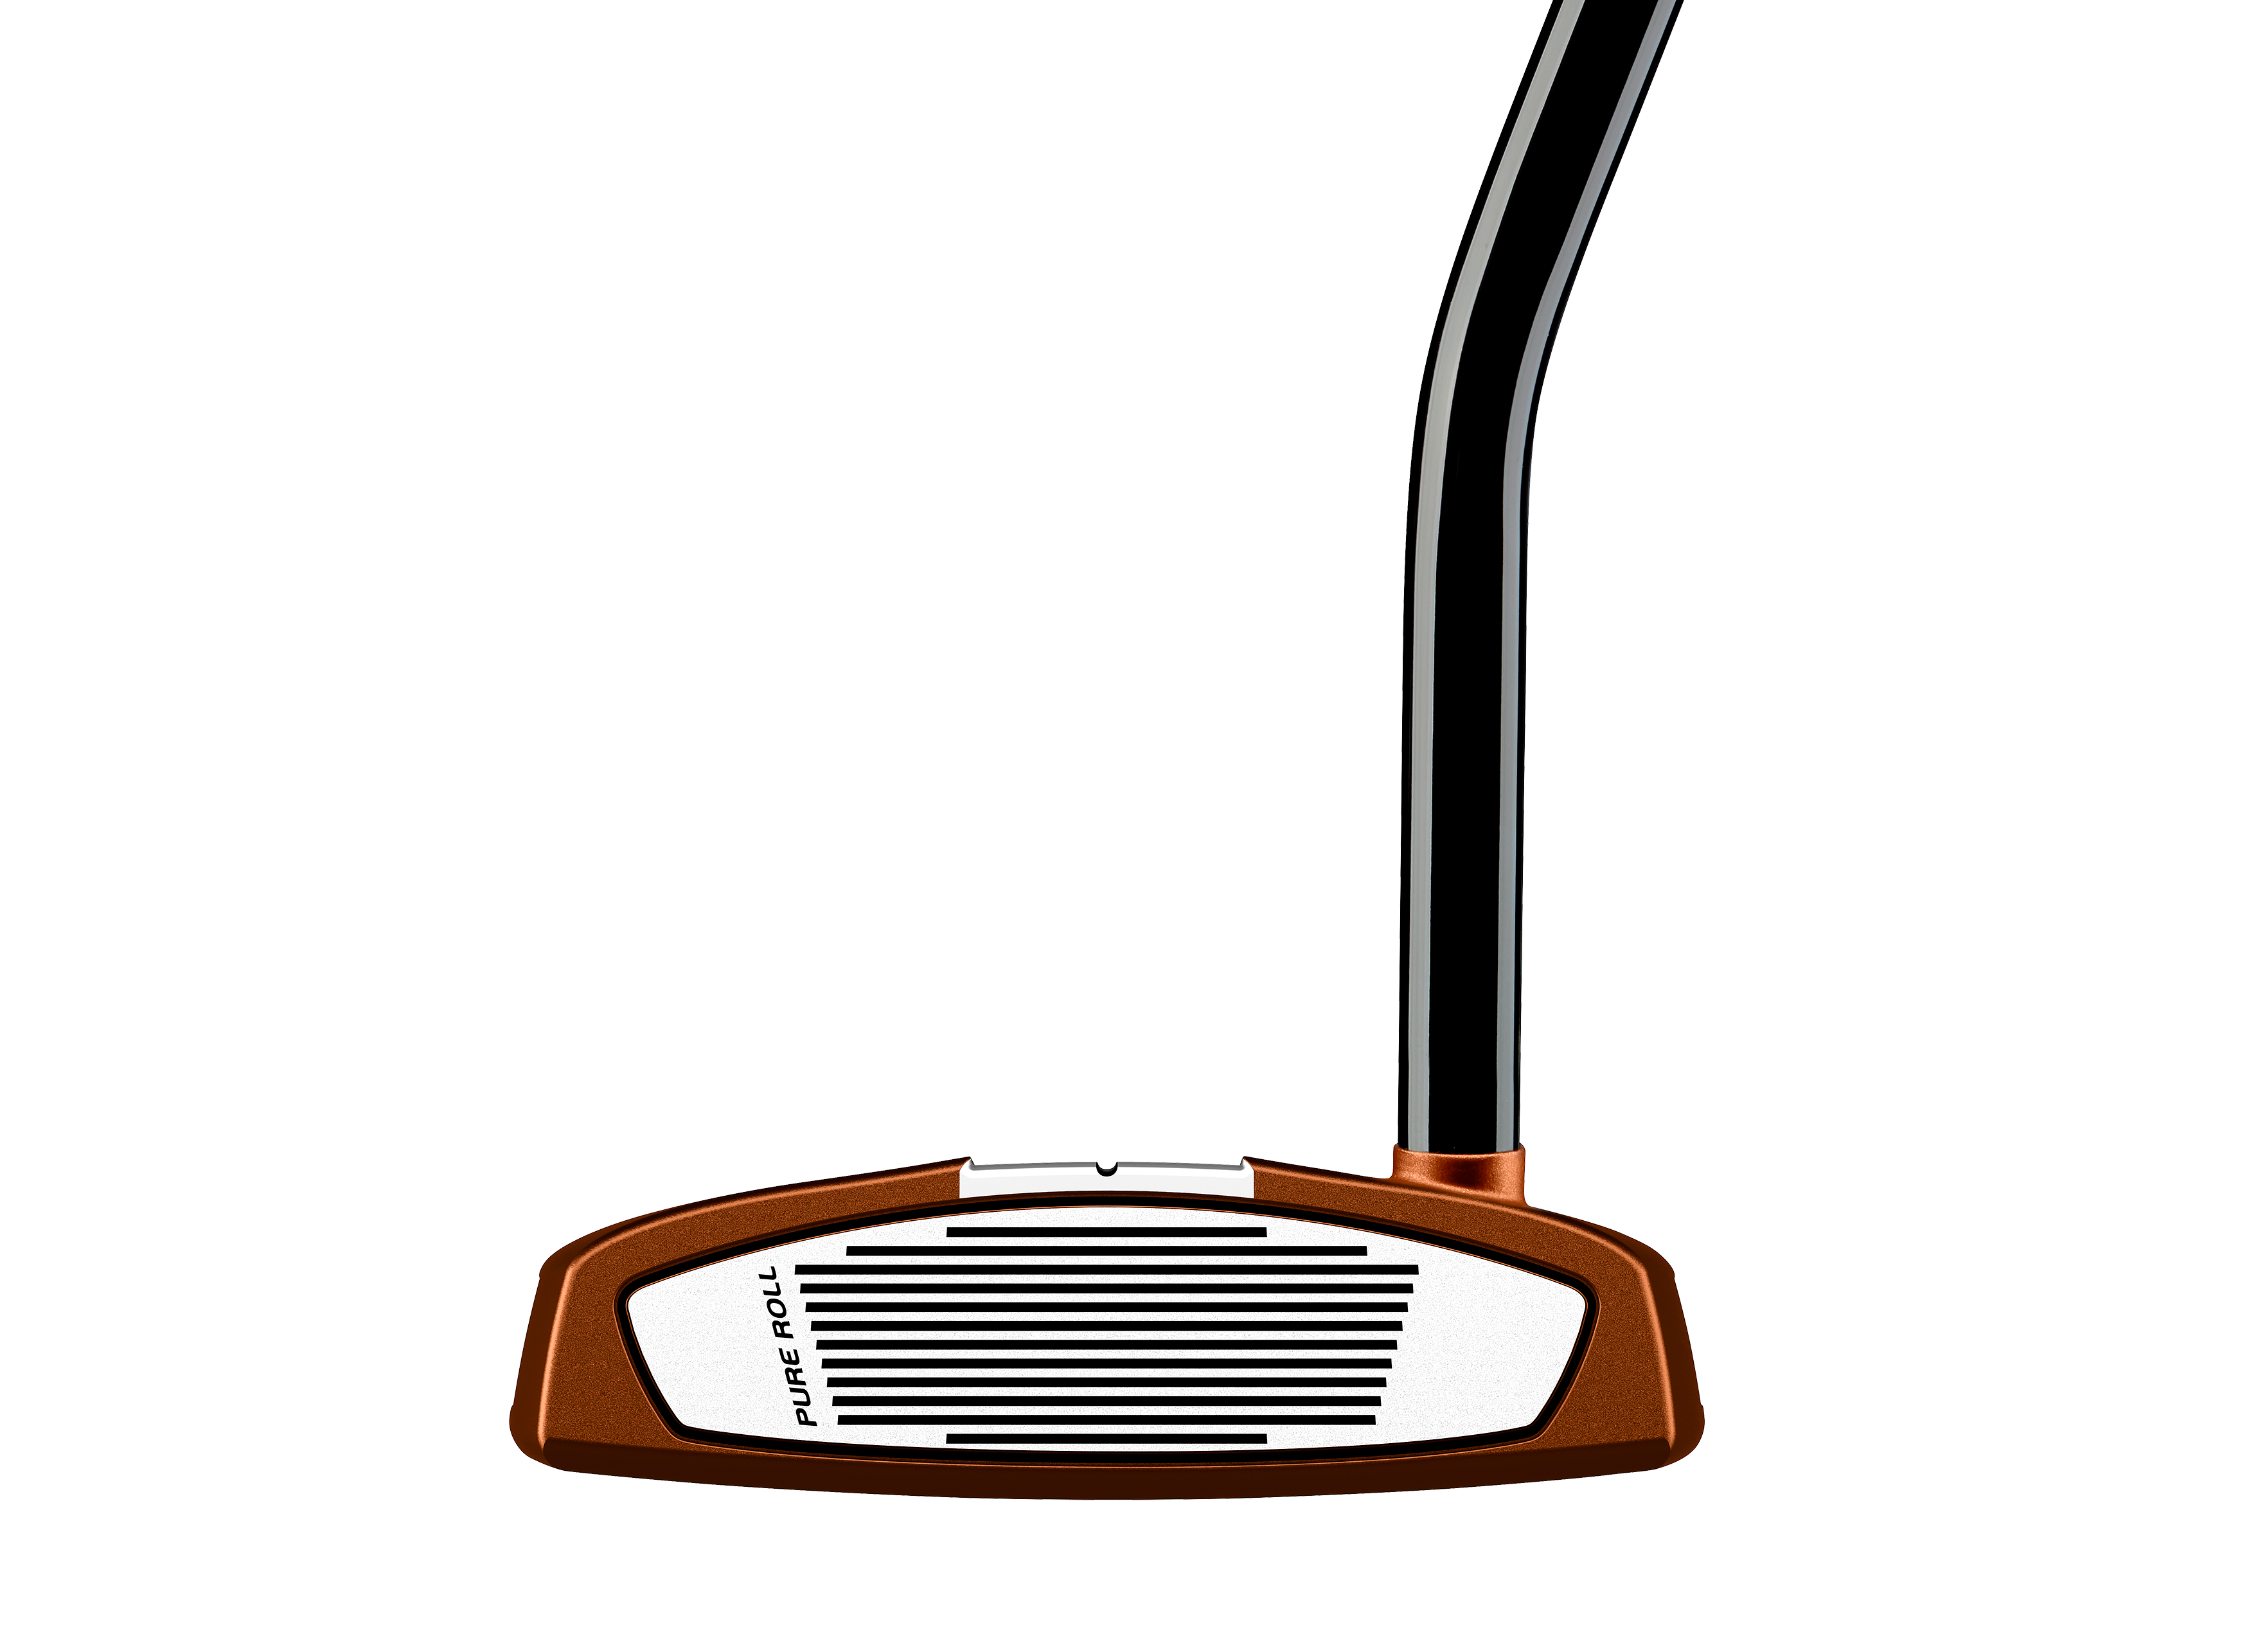 TaylorMade Spider X putter face image adj product image for feature section 2019